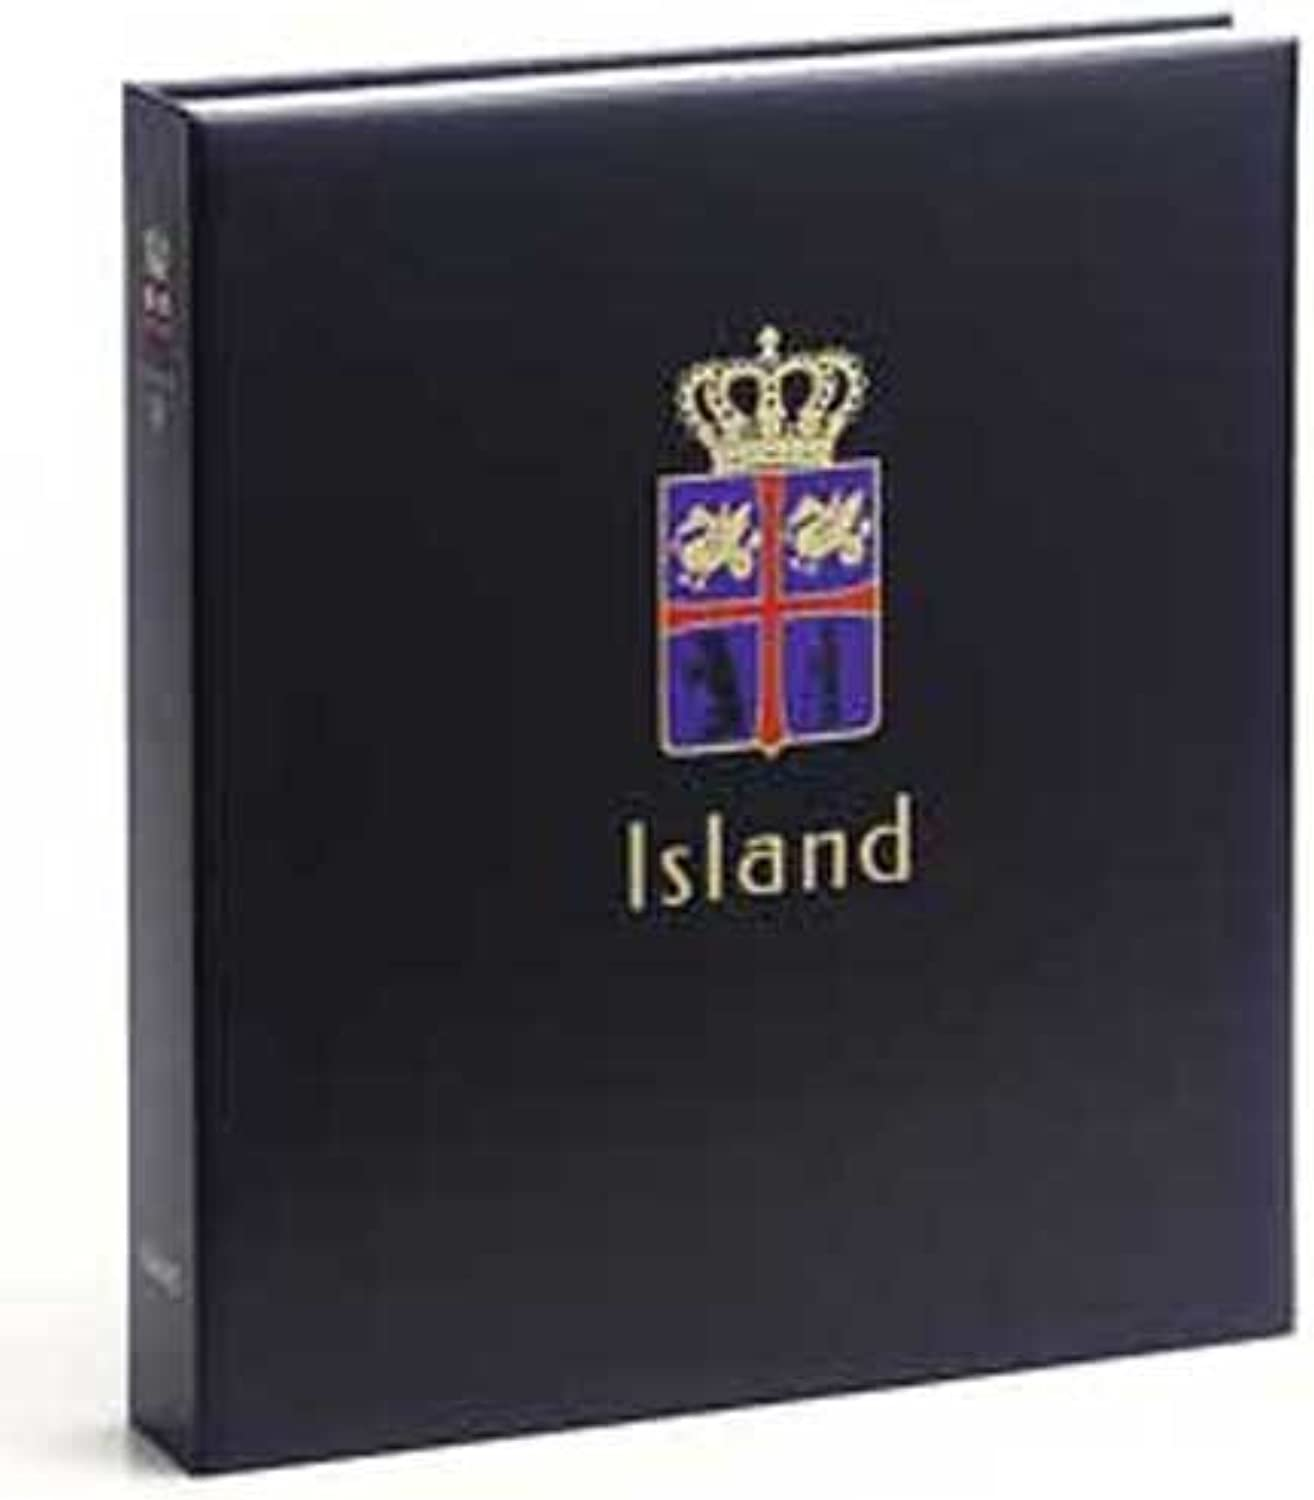 DAVO 9032 Luxe stamp album Iceland II 1990-2009